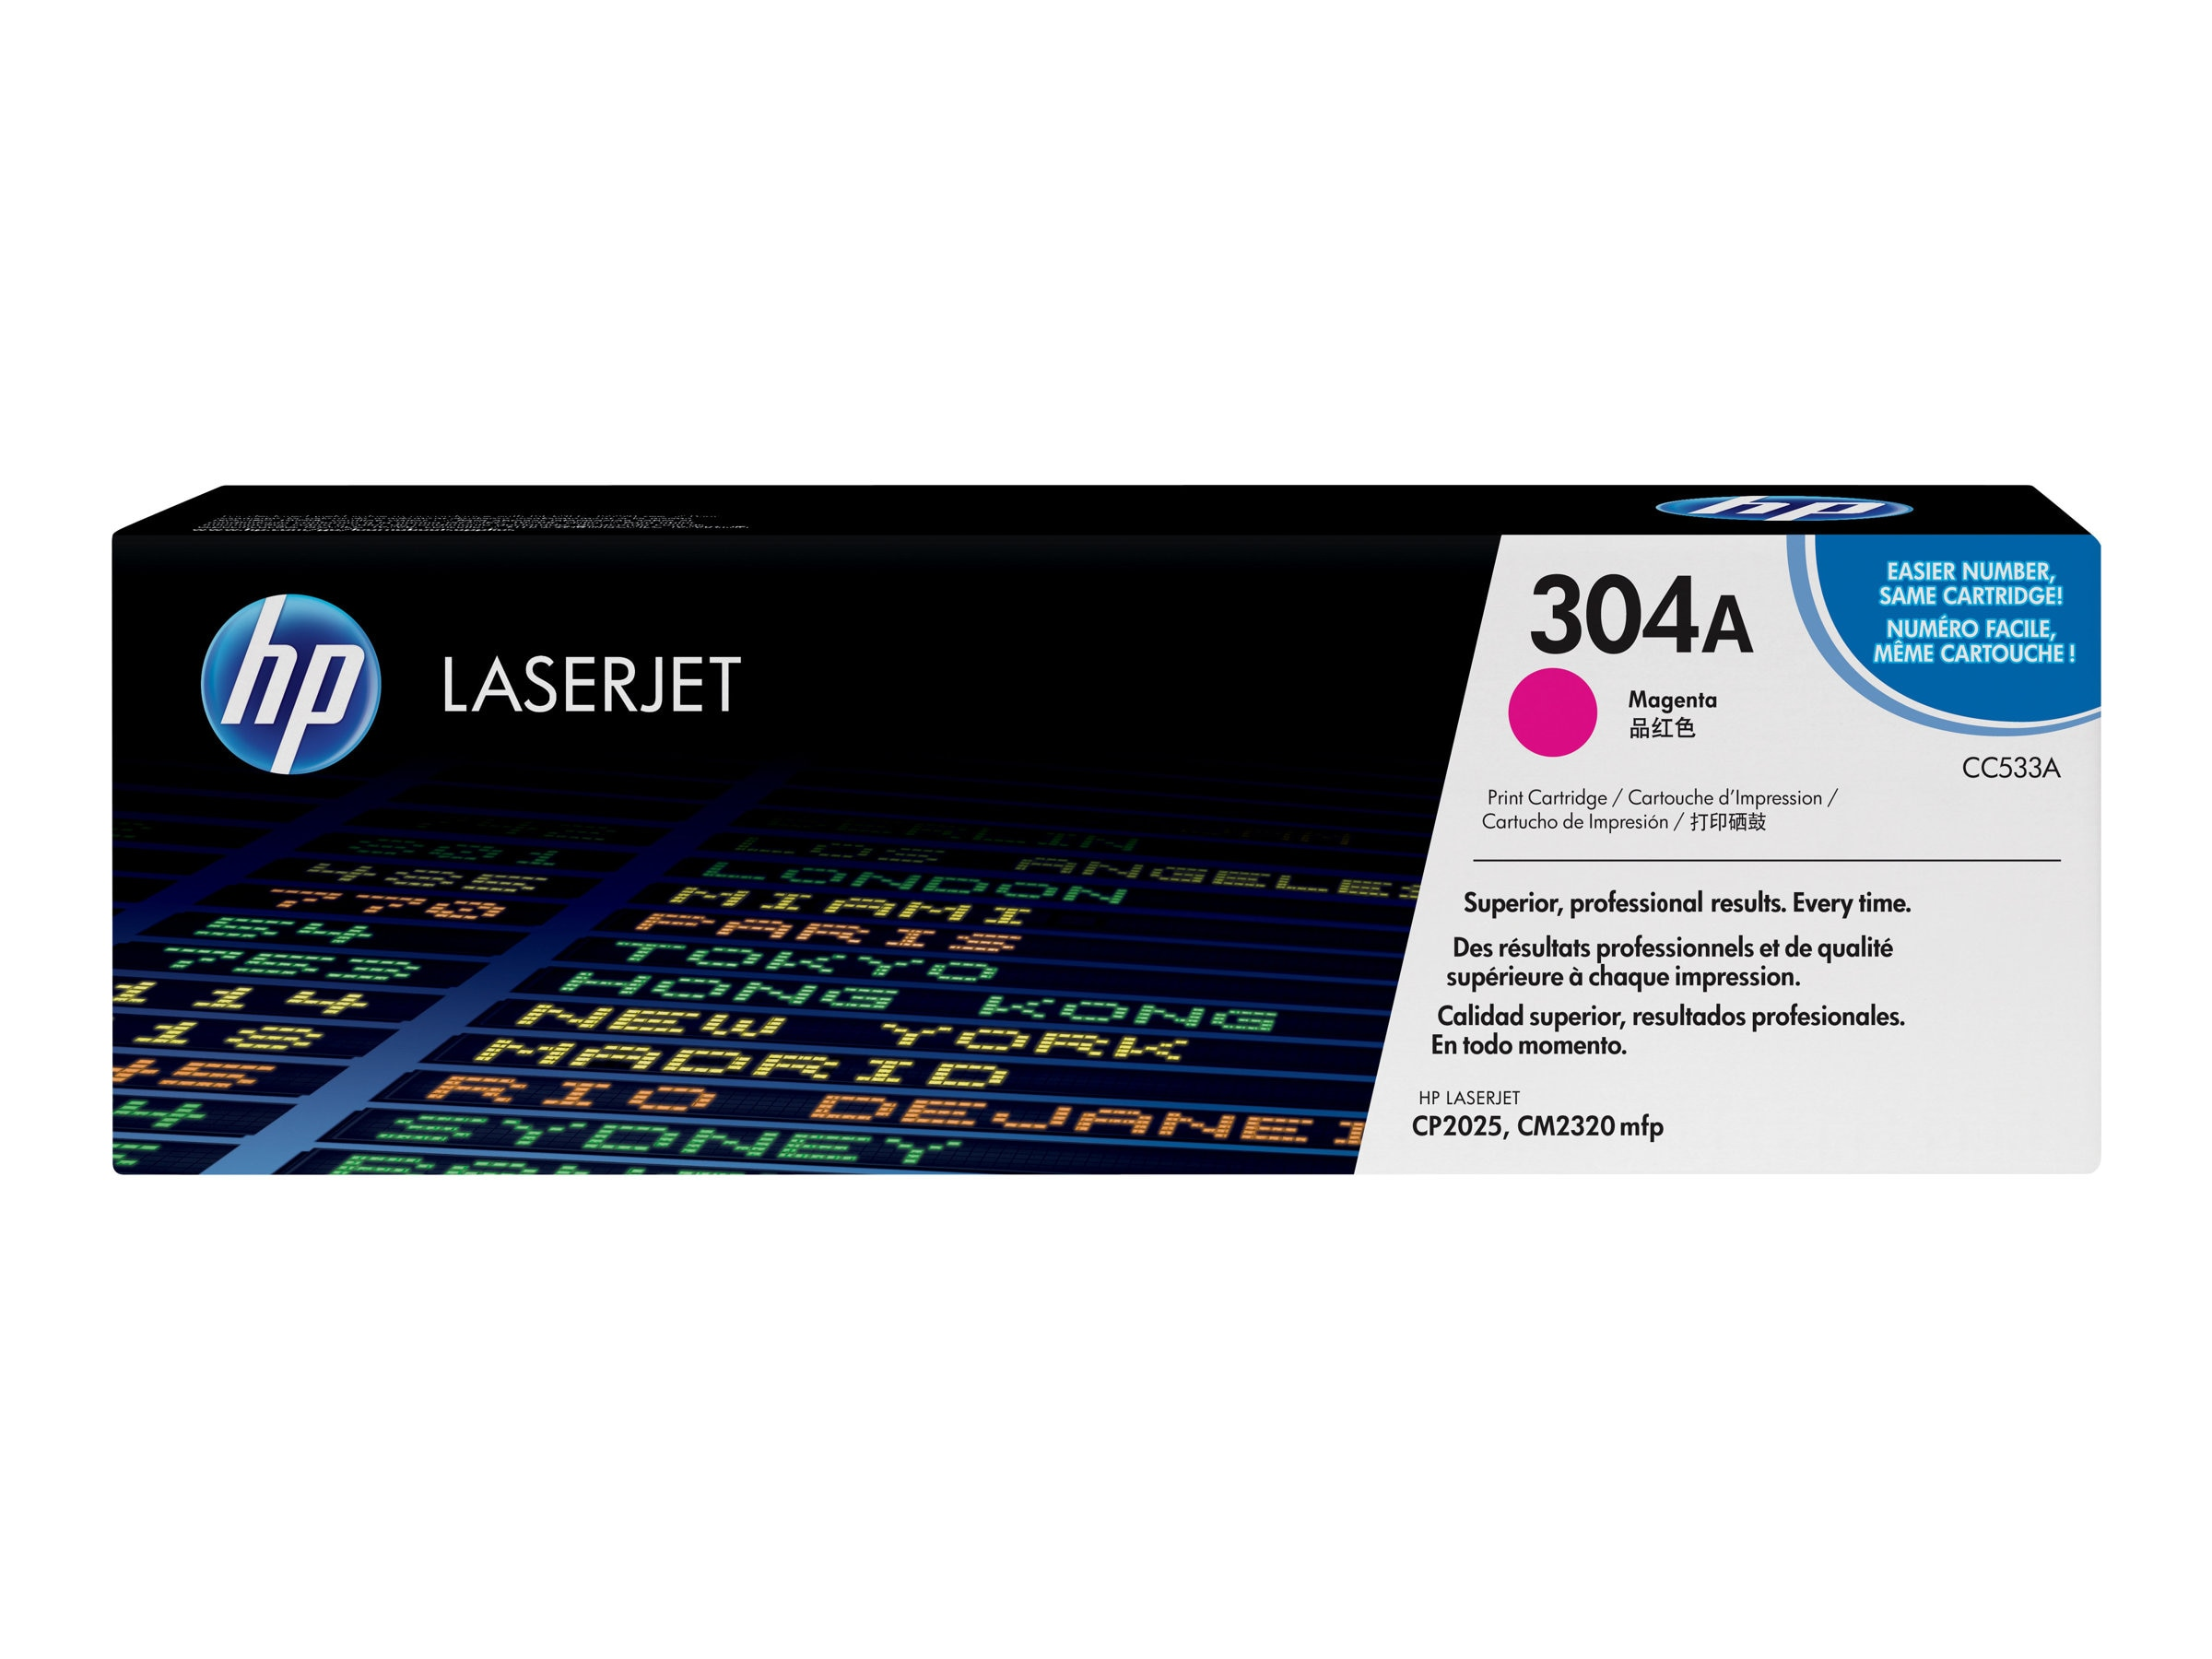 HP 304A (CC533AG) Magenta Original LaserJet Toner Cartridge for US Government (TAA Compliant), CC533AG, 12224132, Toner and Imaging Components